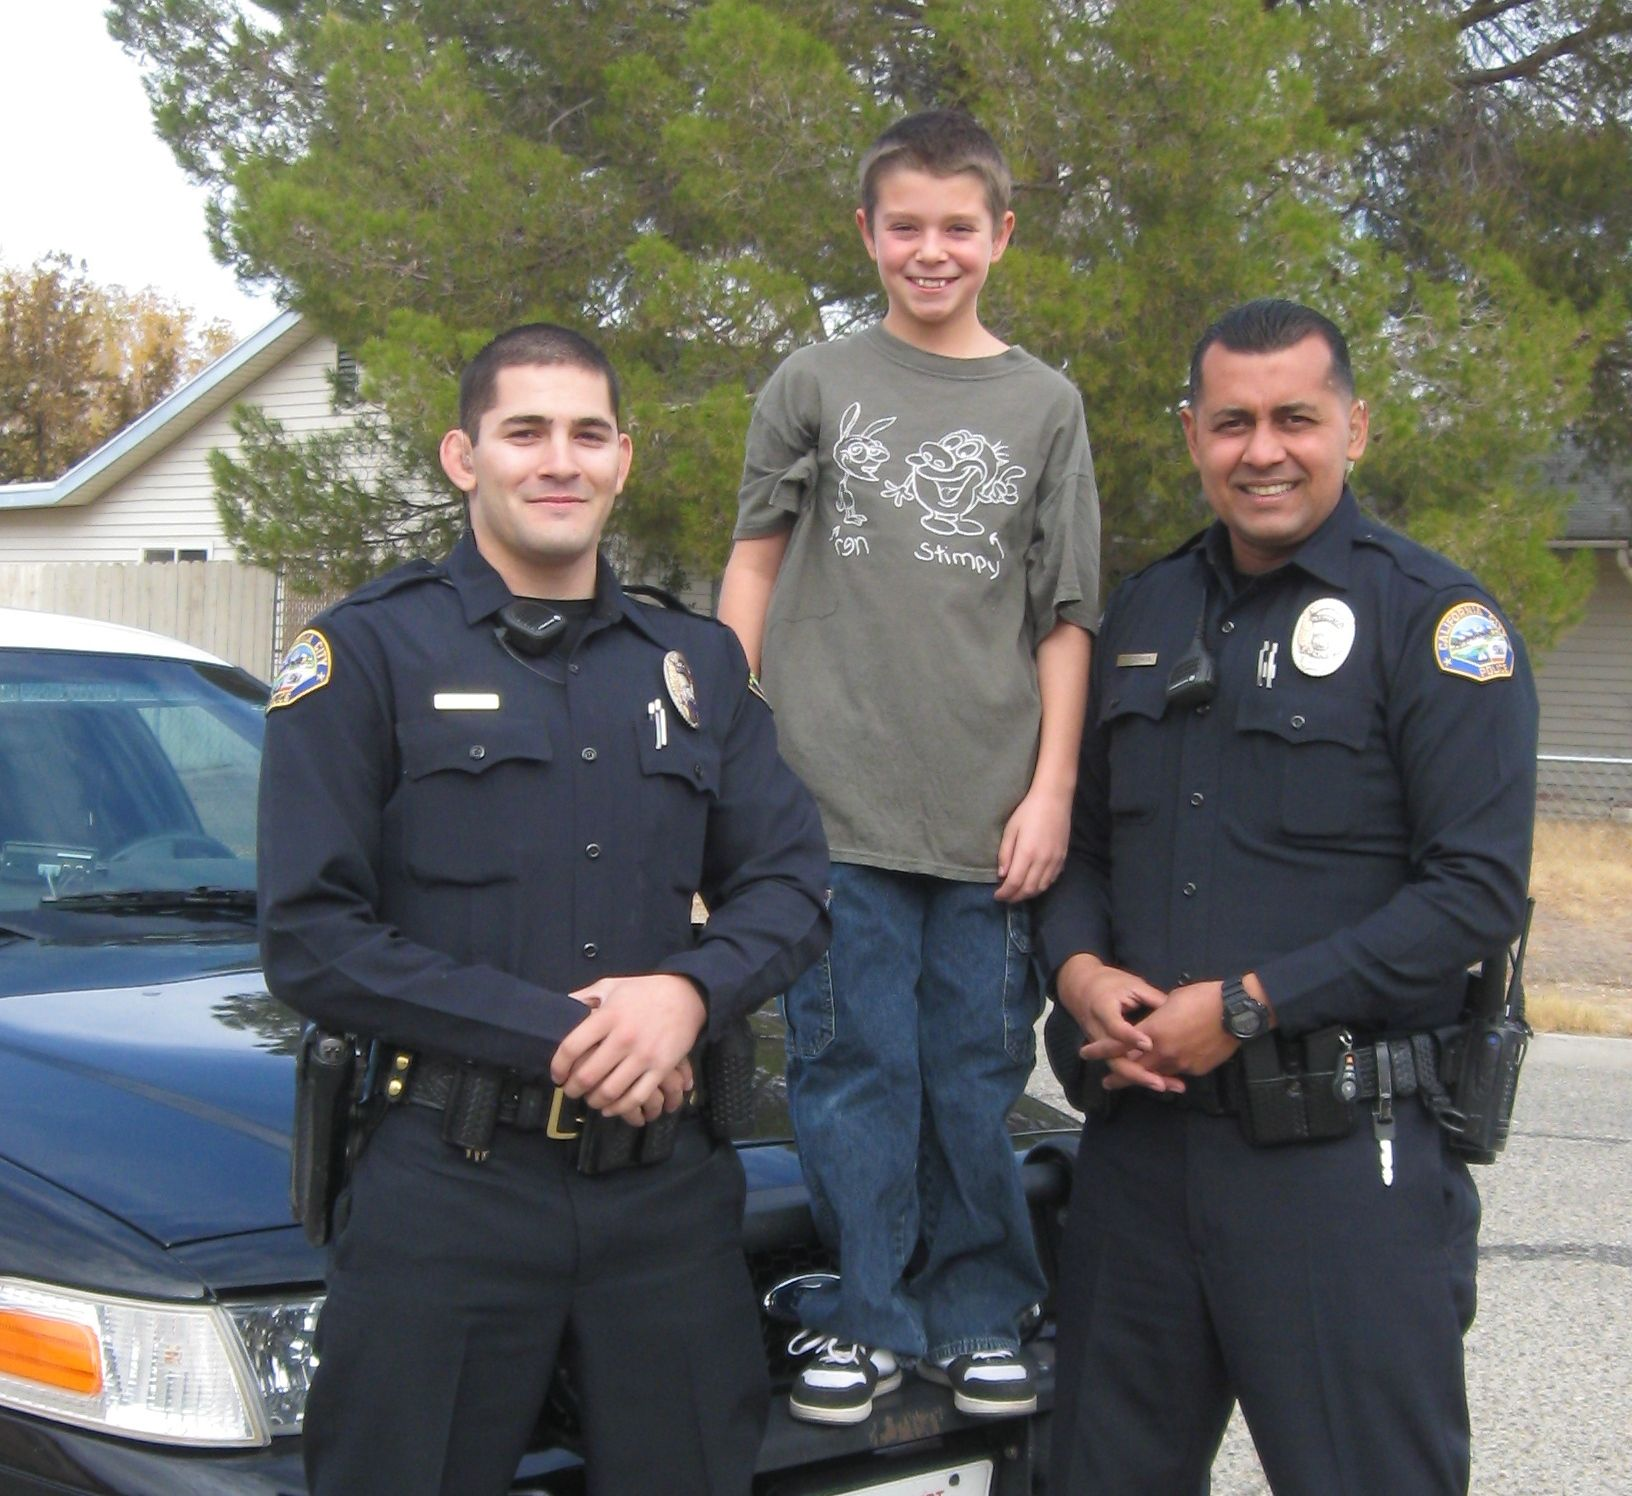 Bags4kids helps officers aquire comfort items for children.